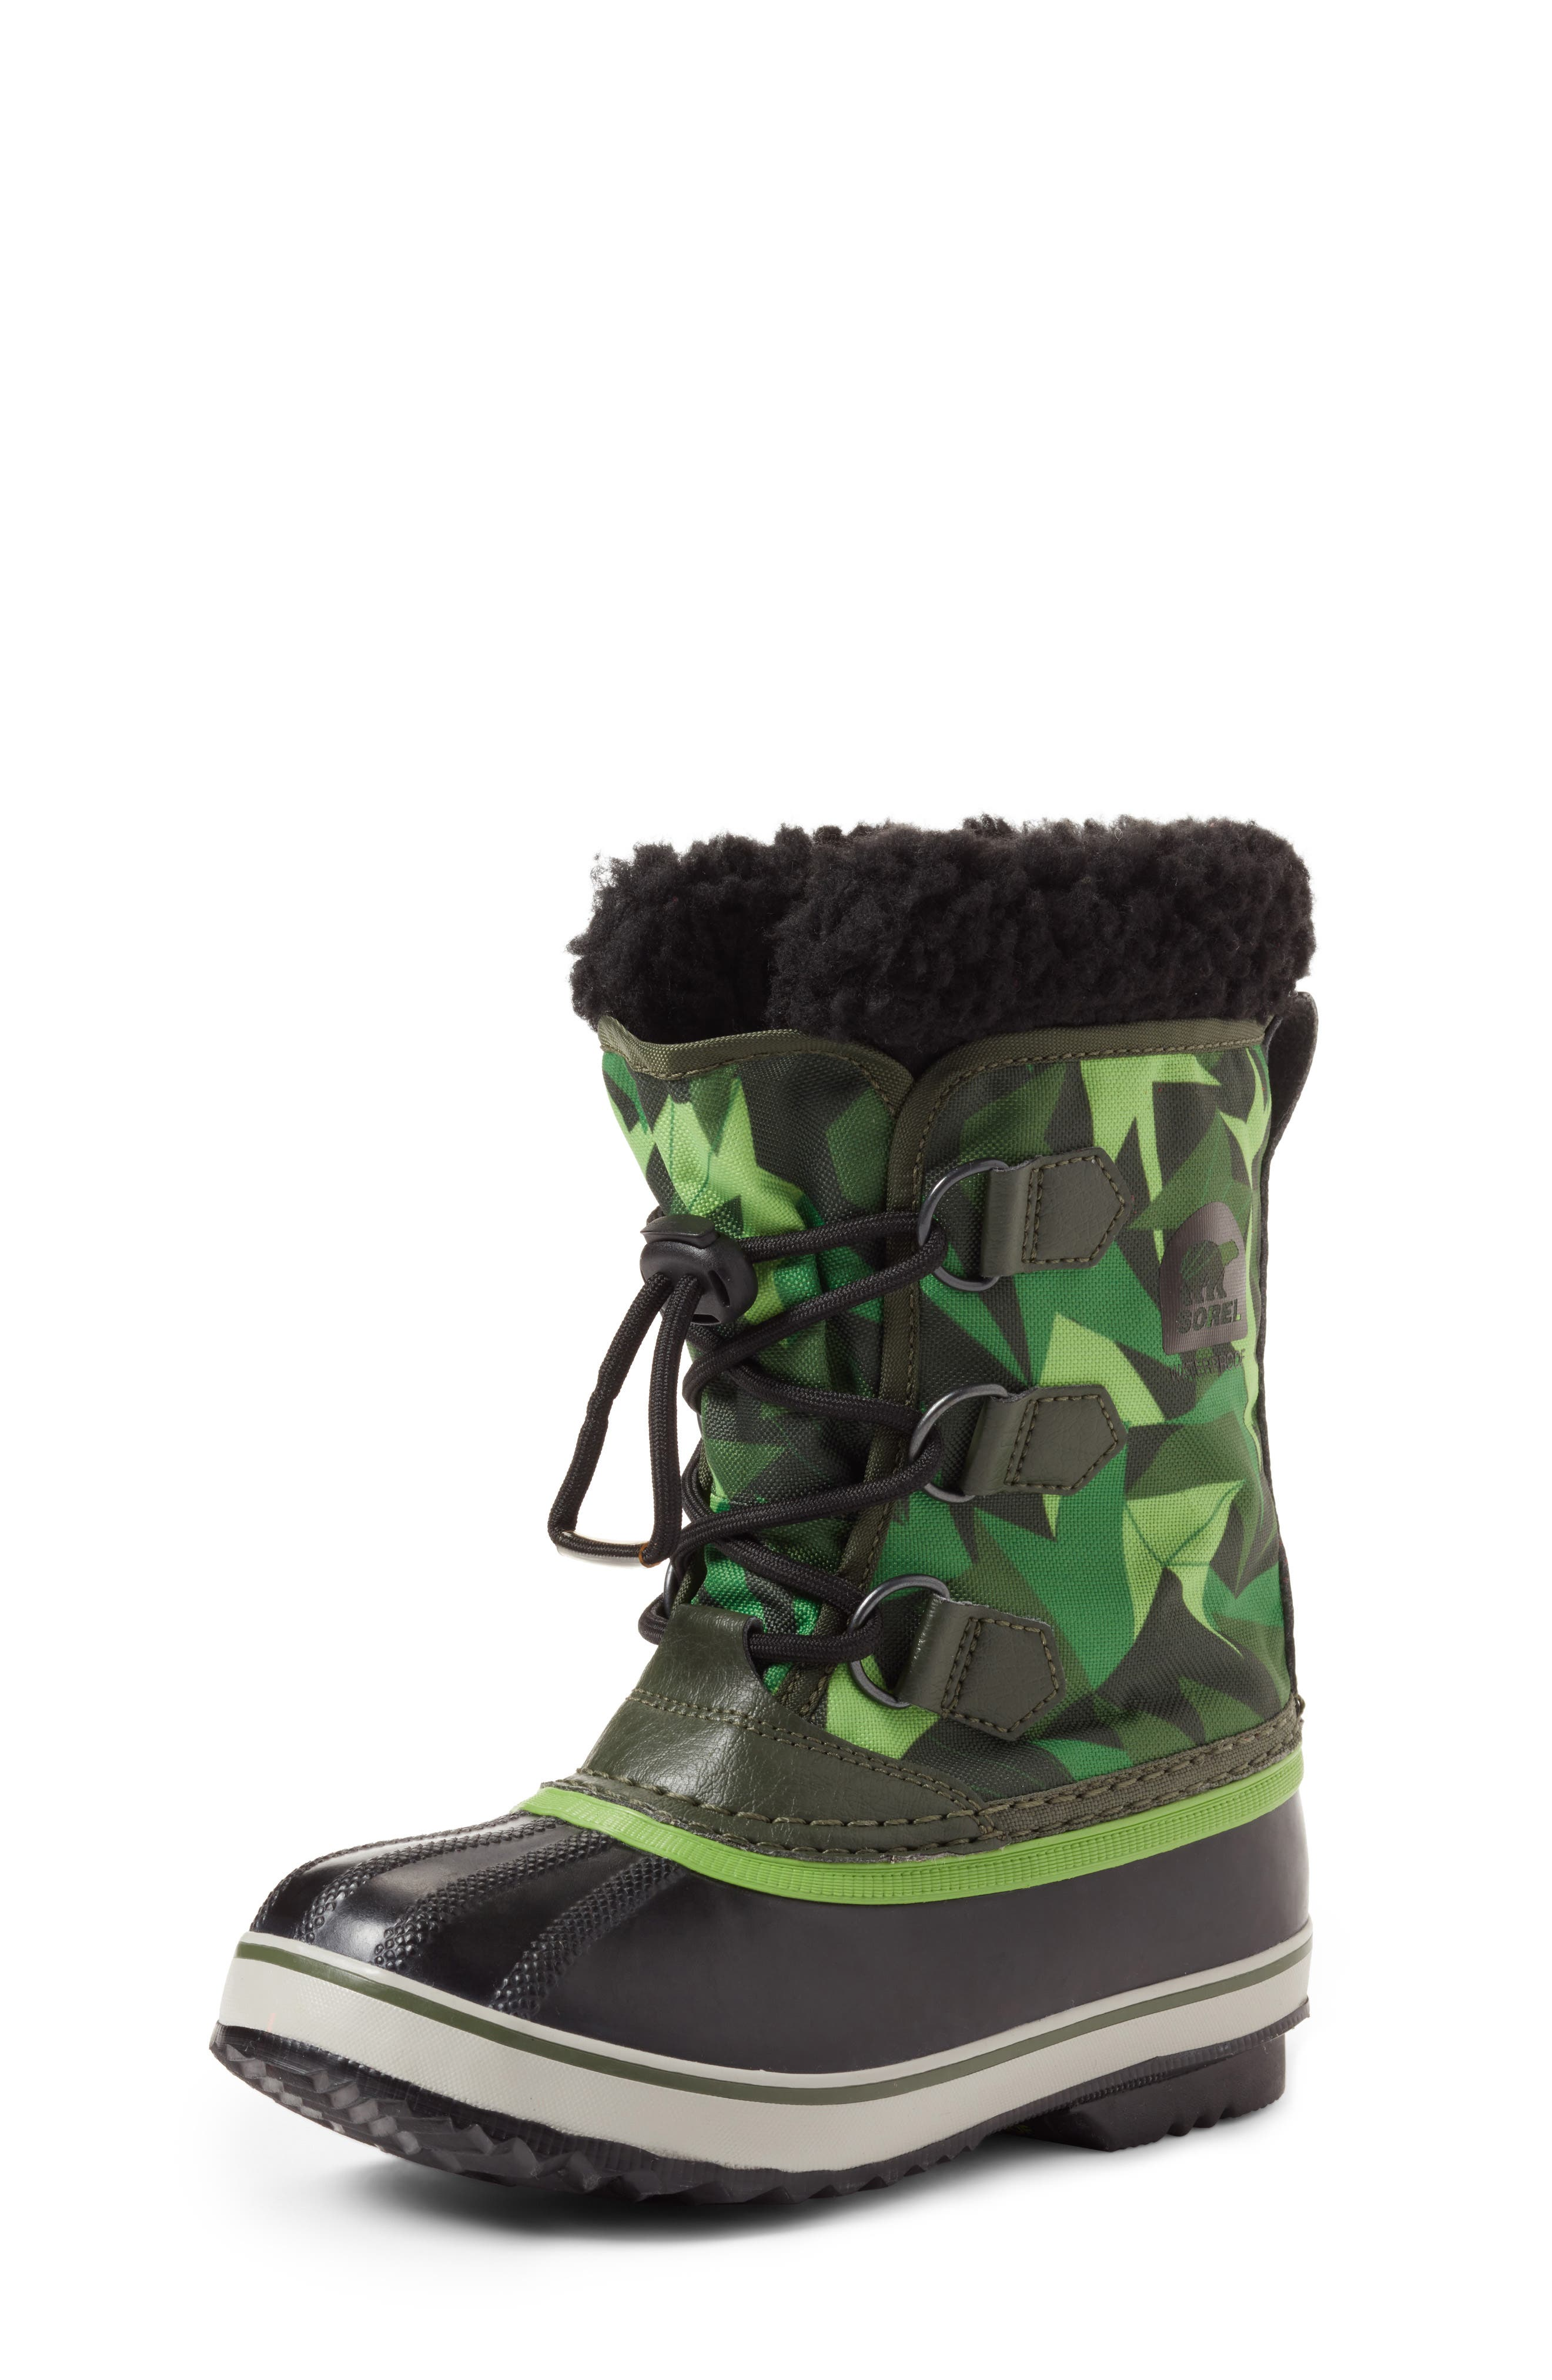 Yoot Pac Waterproof Insulated Snow Boot,                         Main,                         color, Surplus Green/ Green Mamba